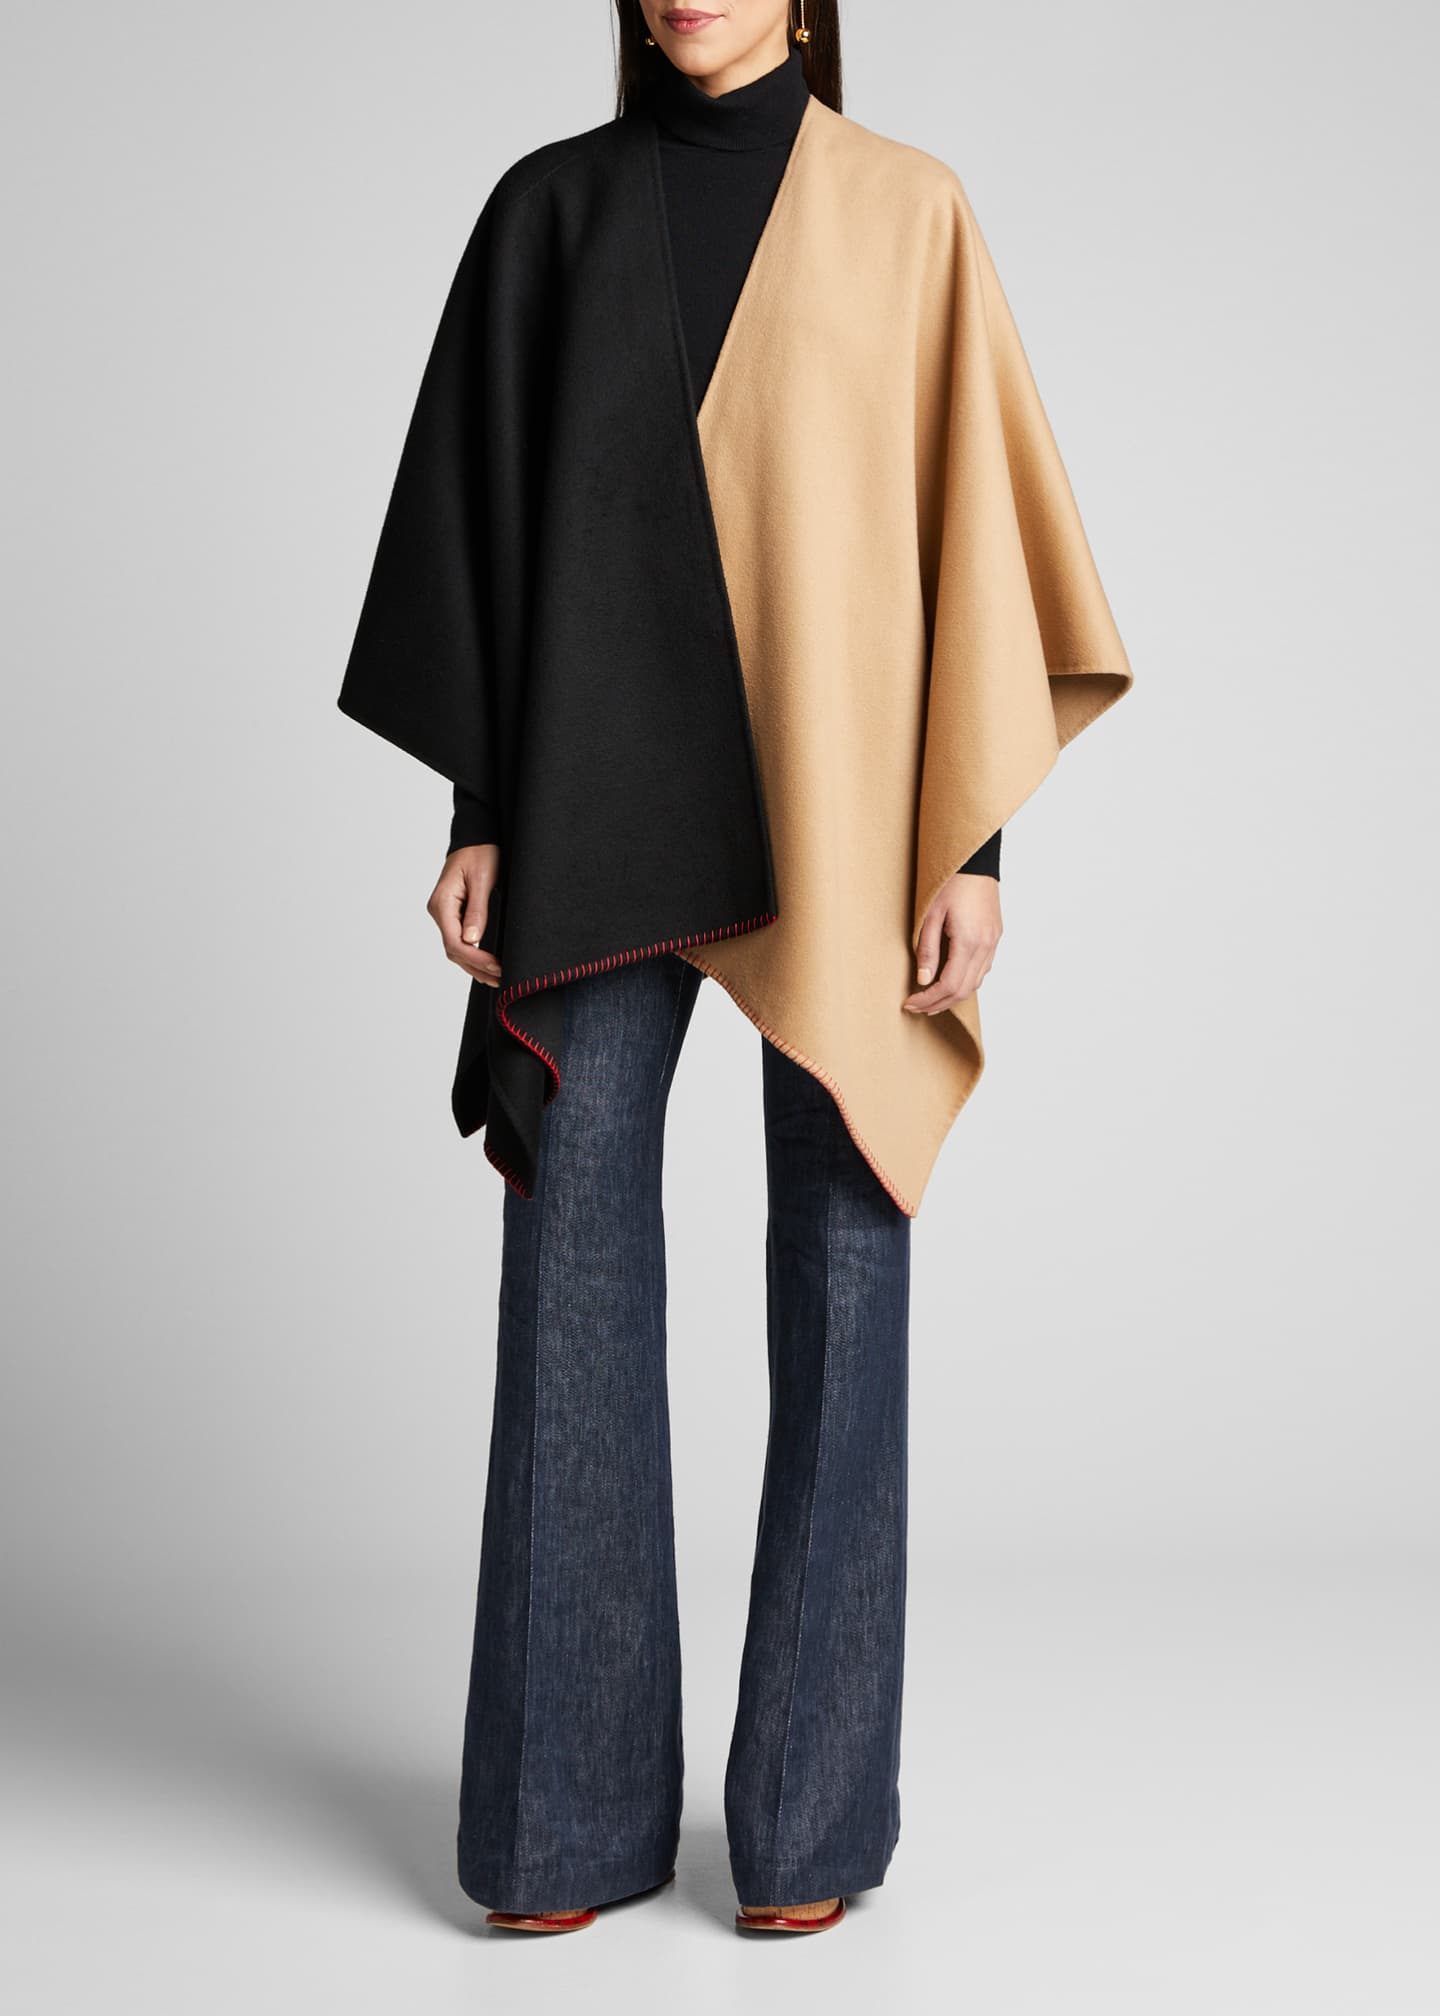 Gabriela Hearst Francis Cashmere Two-Tone Stitched Poncho